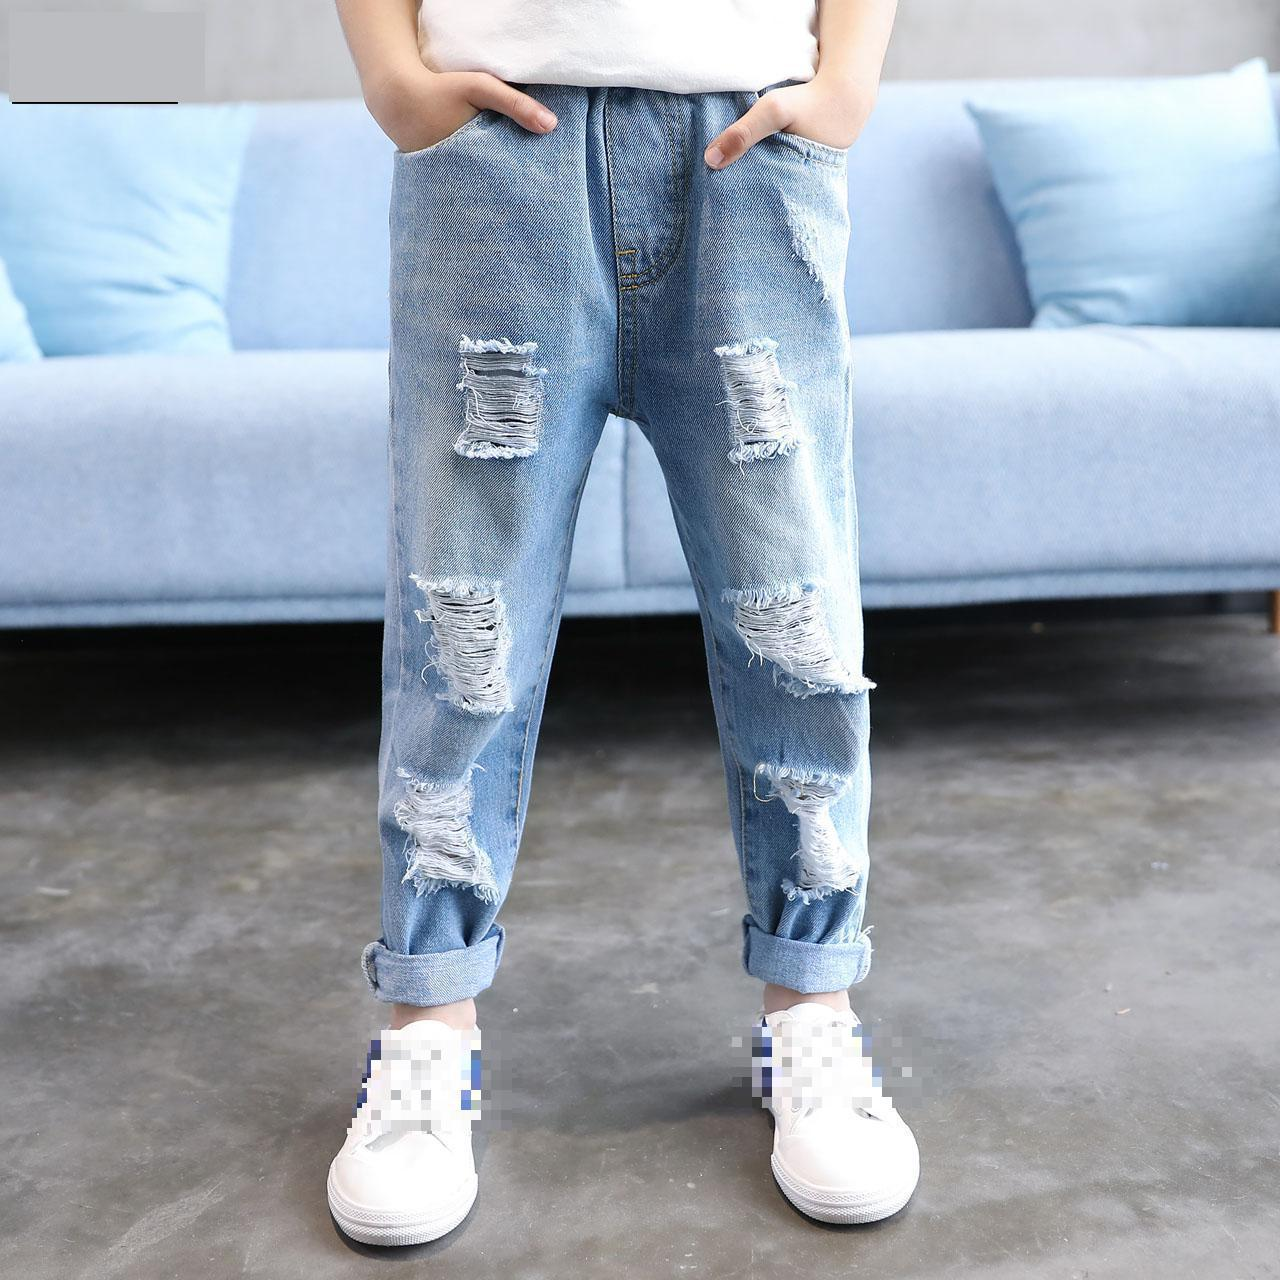 Children Broken Hole Pants 2017 Spring Jeans For Boy 4 5 6 7 8 9 10 11 12 13 Years Kids Ripped Jeans Baby Boy Soild Denim Pants аксессуар чехол lenovo a plus a1010 vibe b a2016 gecko transparent glossy white s g lena1010 wh href page 4 page 1